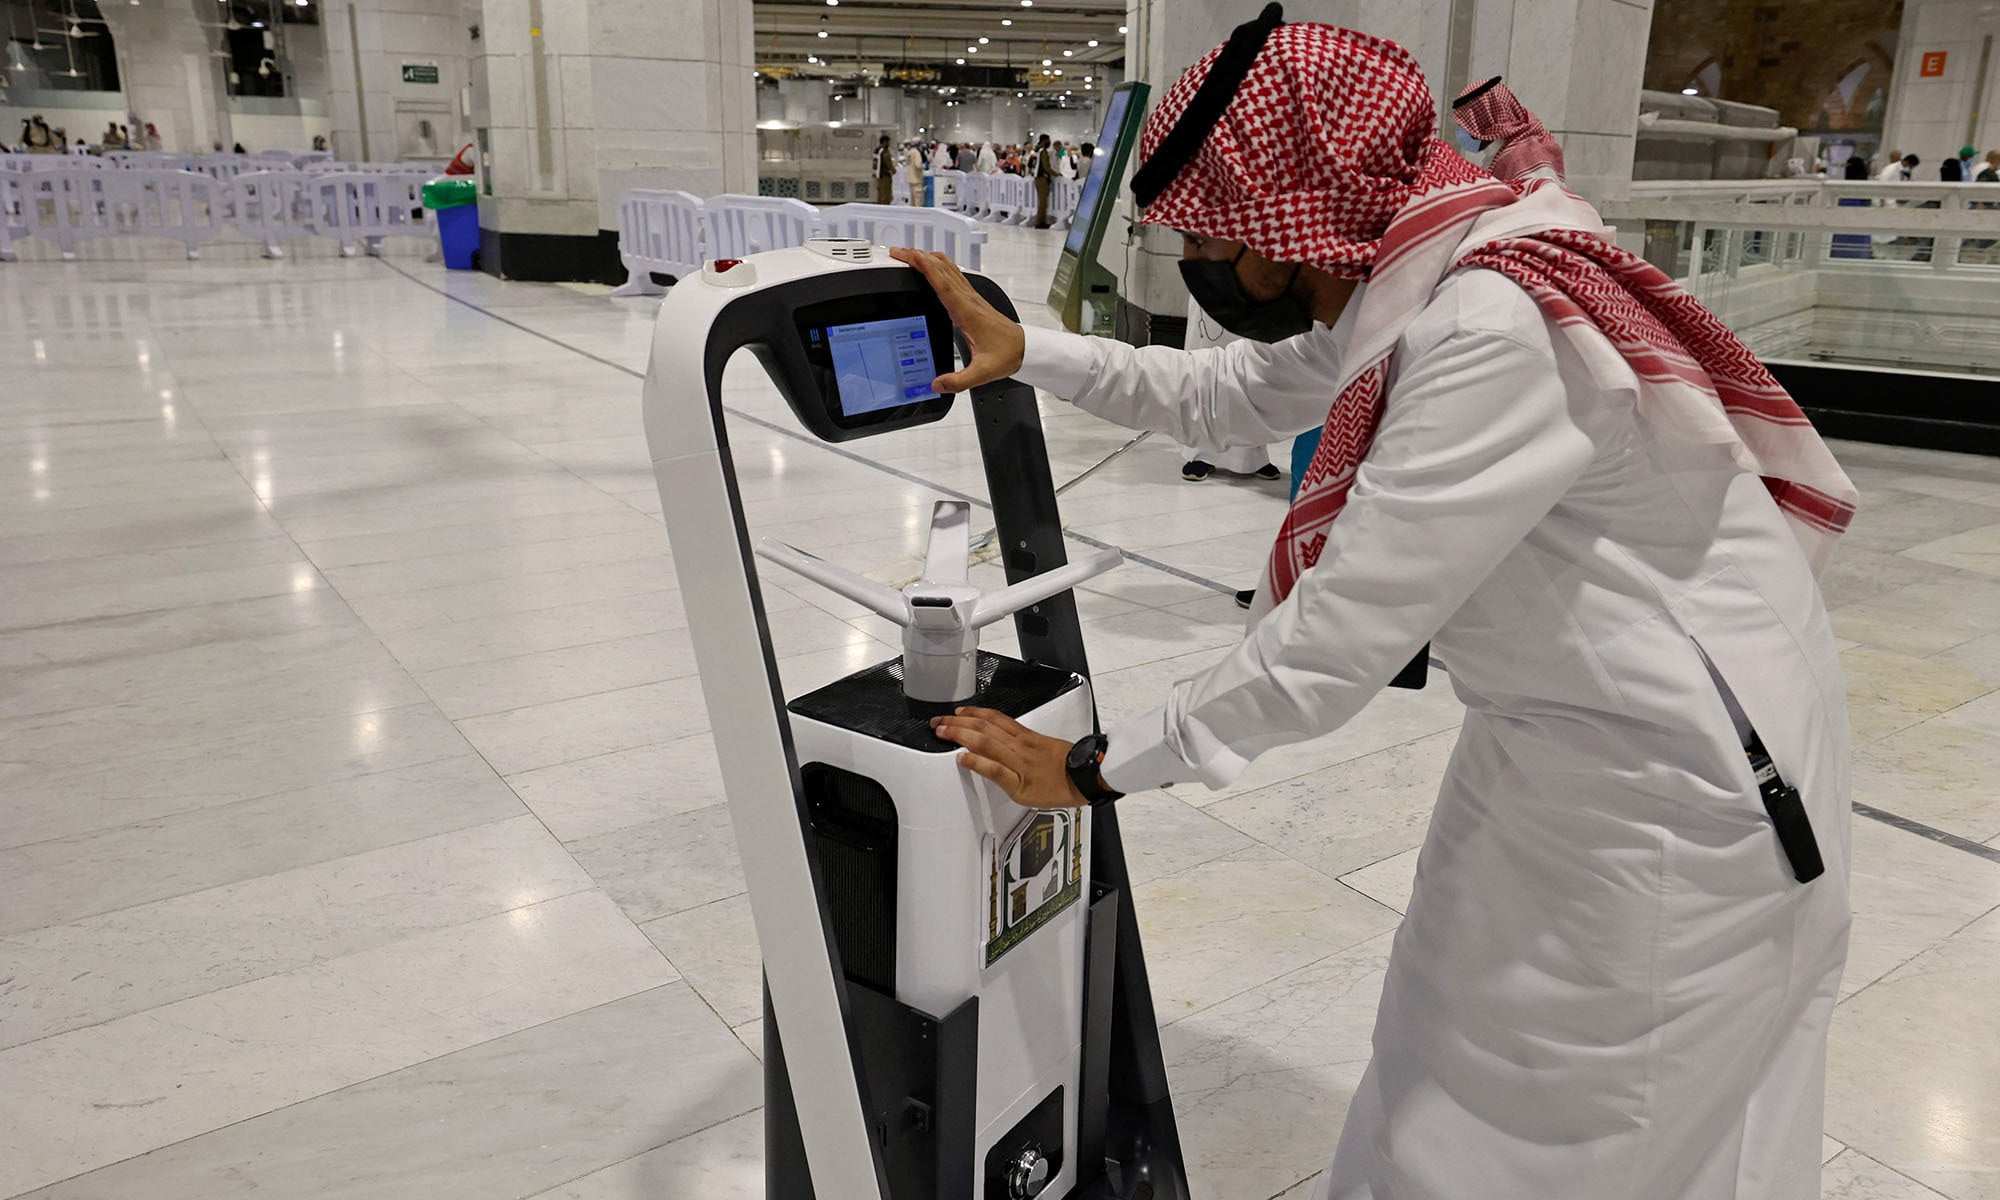 A Saudi staff works on a smart sterilising robot at the Grand Mosque in Saudi Arabia's holy city of Mecca, during the yearly Haj pilgrimage amid the Covid-19 pandemic on July 20, 2021. — AFP